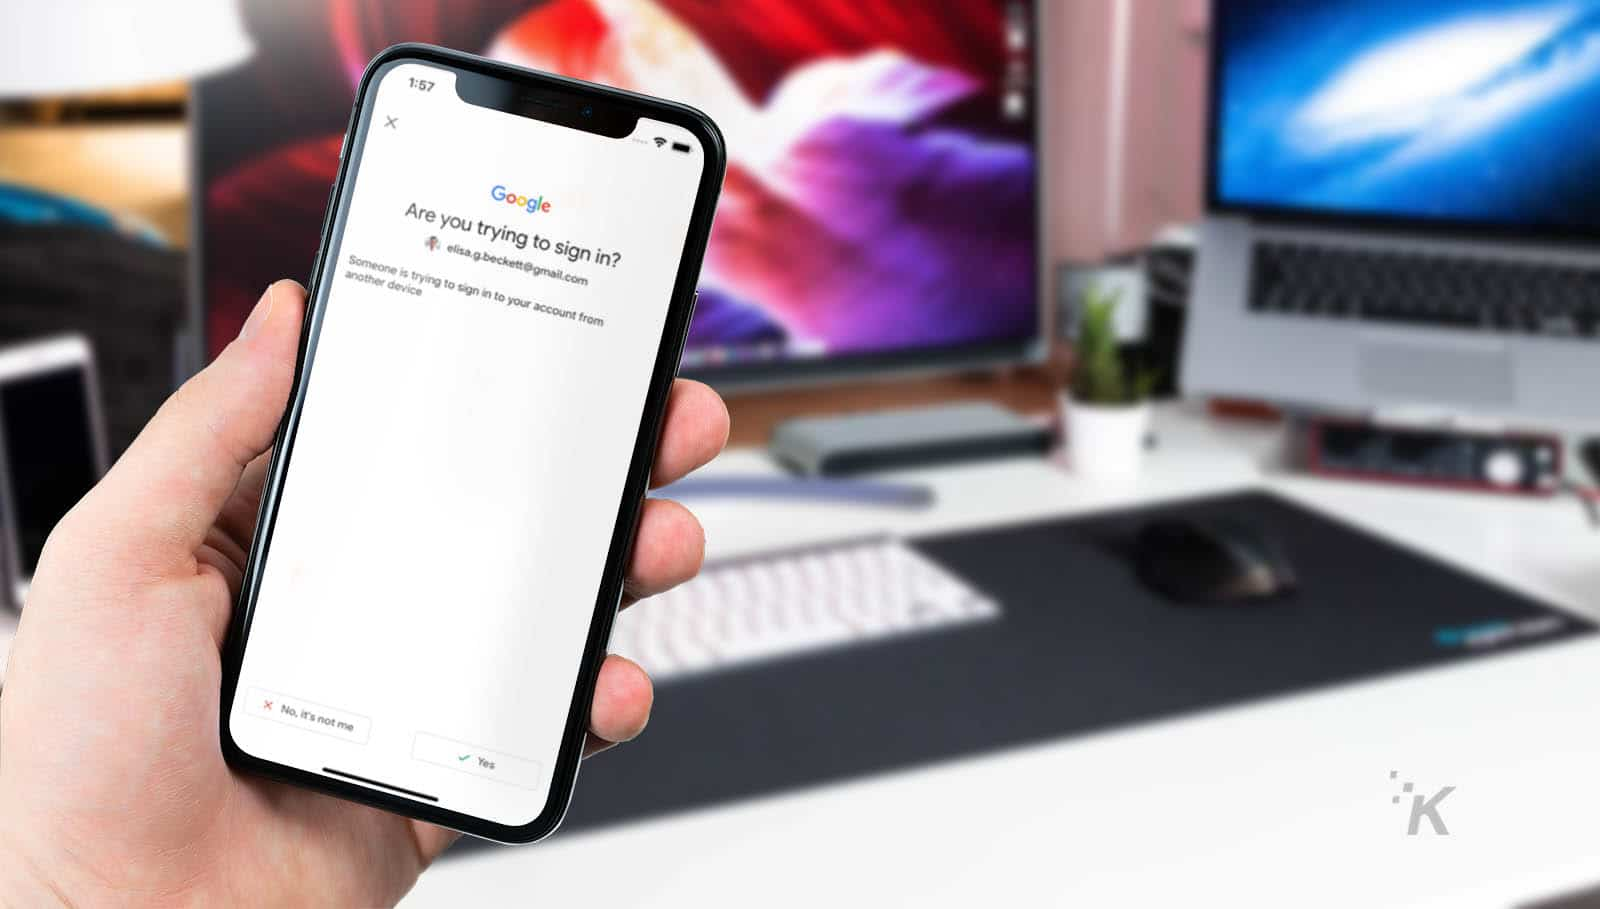 google two factor feature on iphone